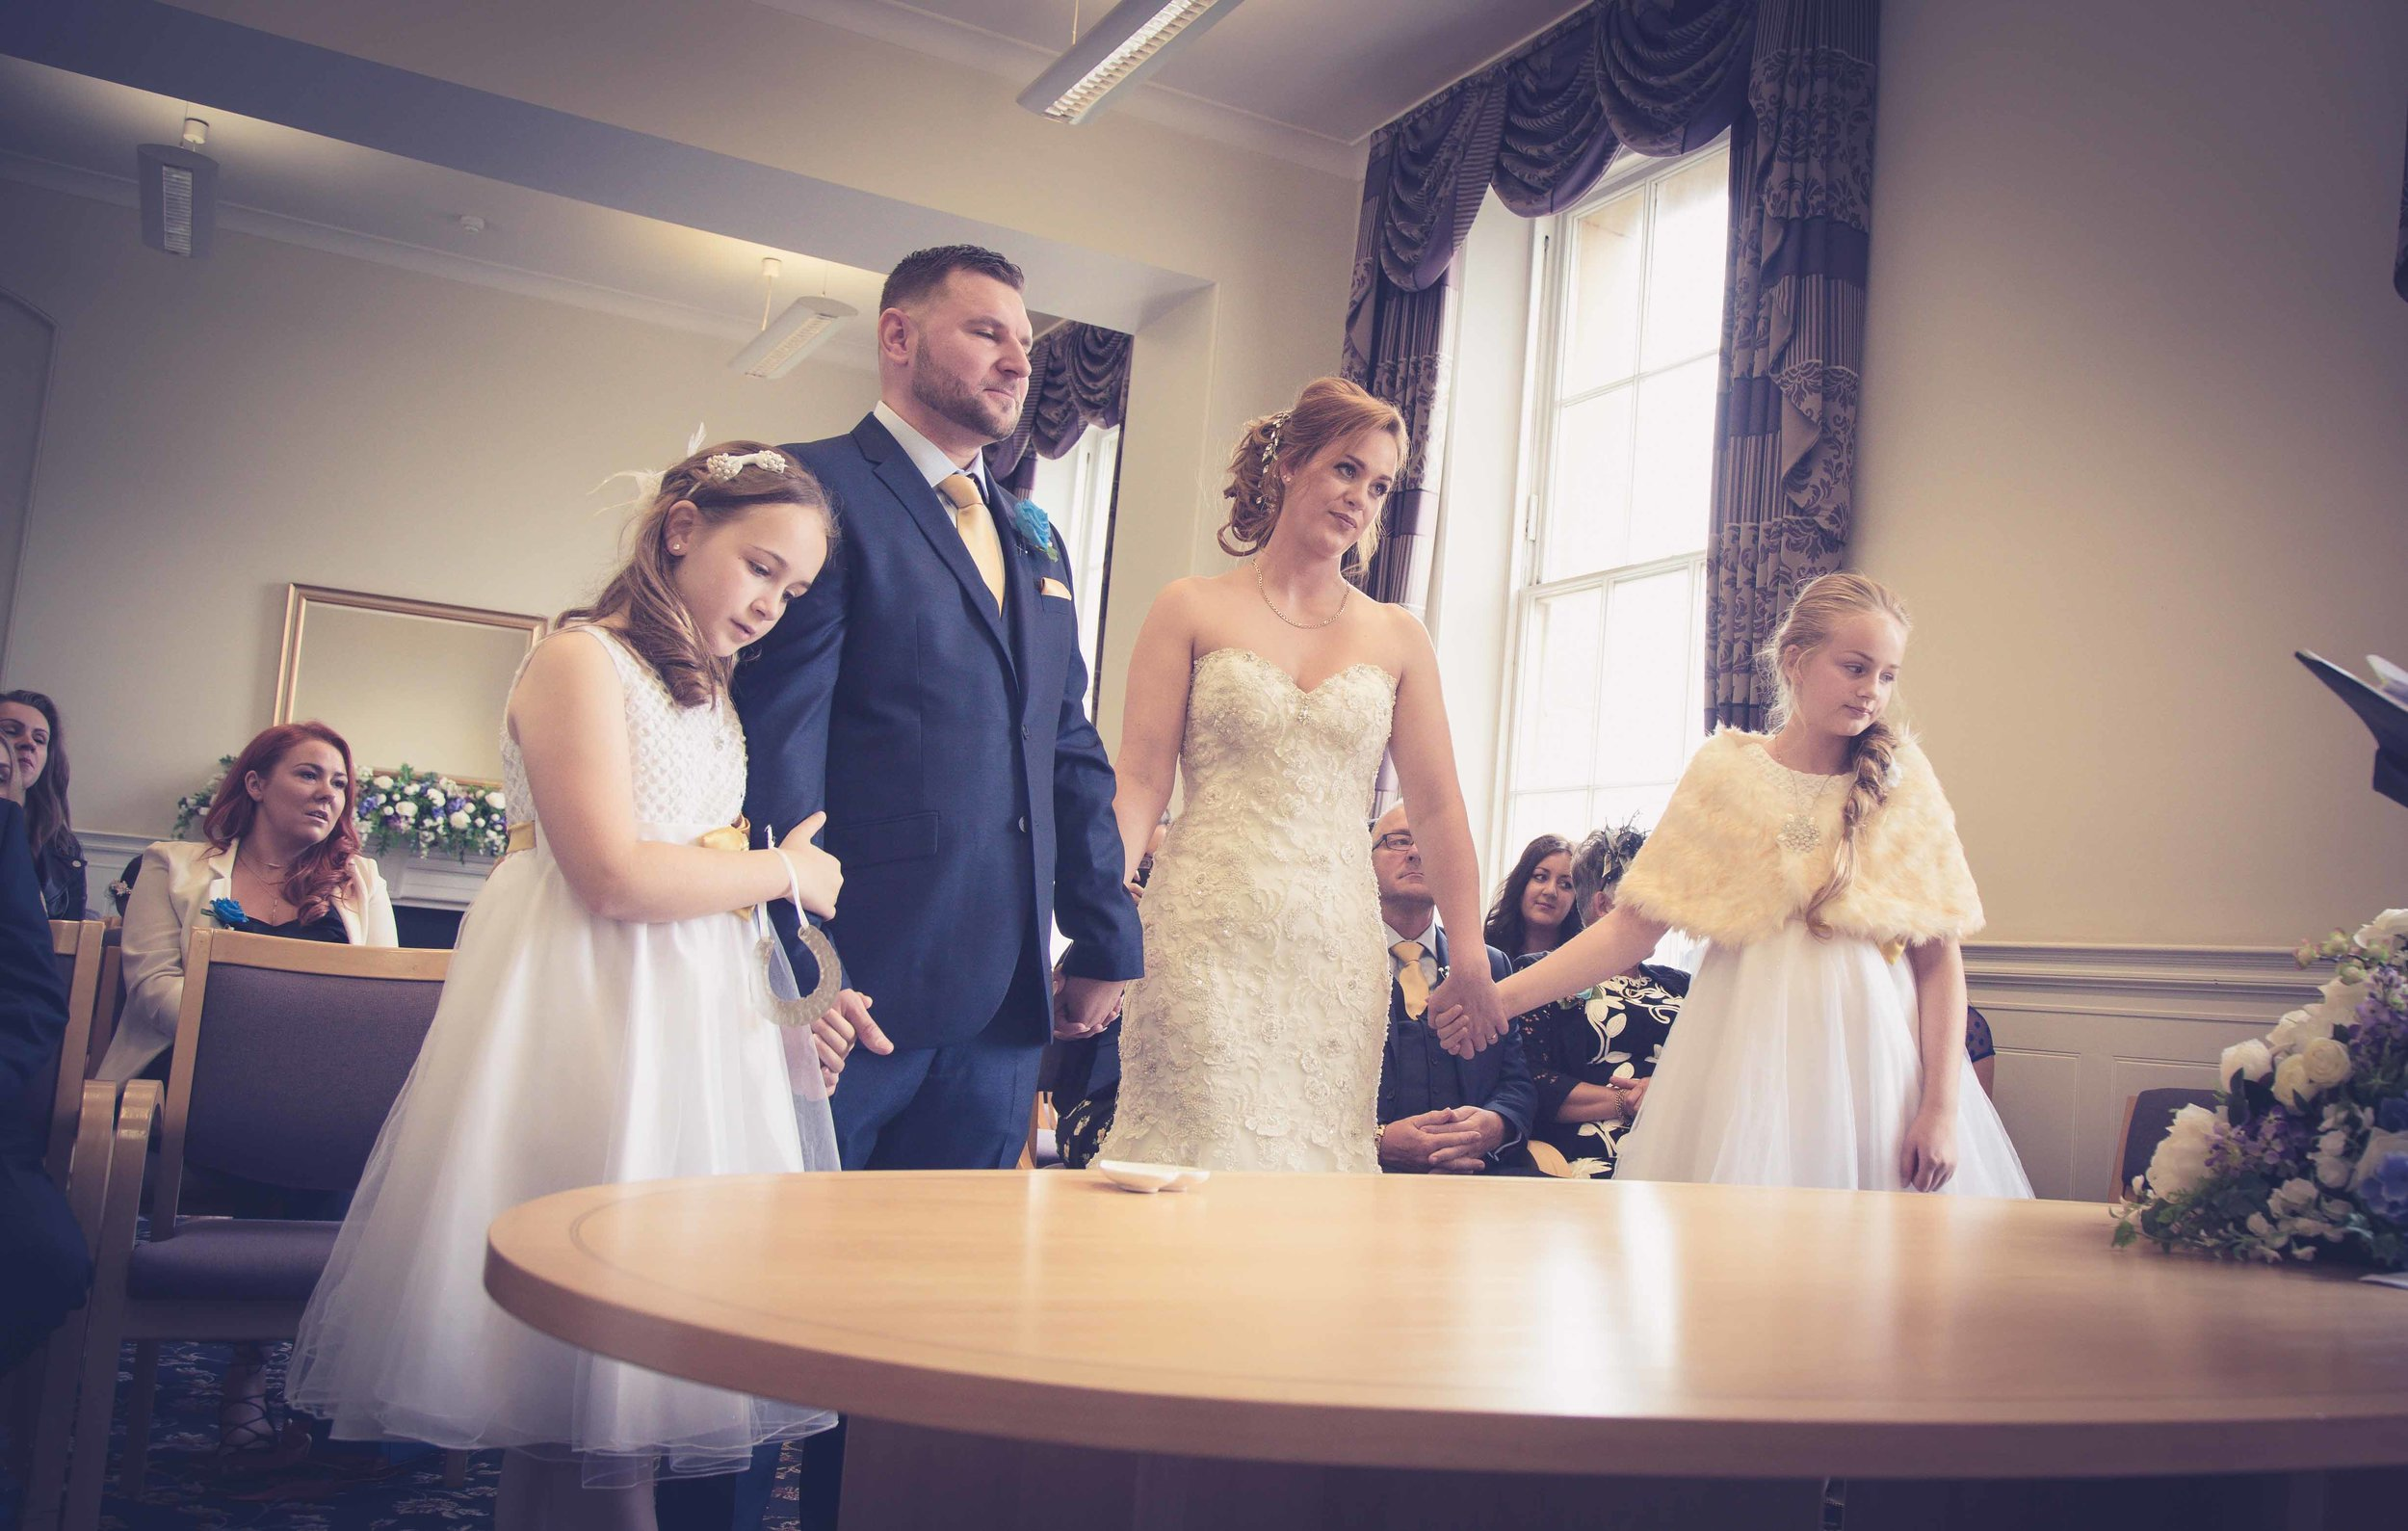 wedding-photos-at-st-georges-hall-liverpool (34 of 122).jpg